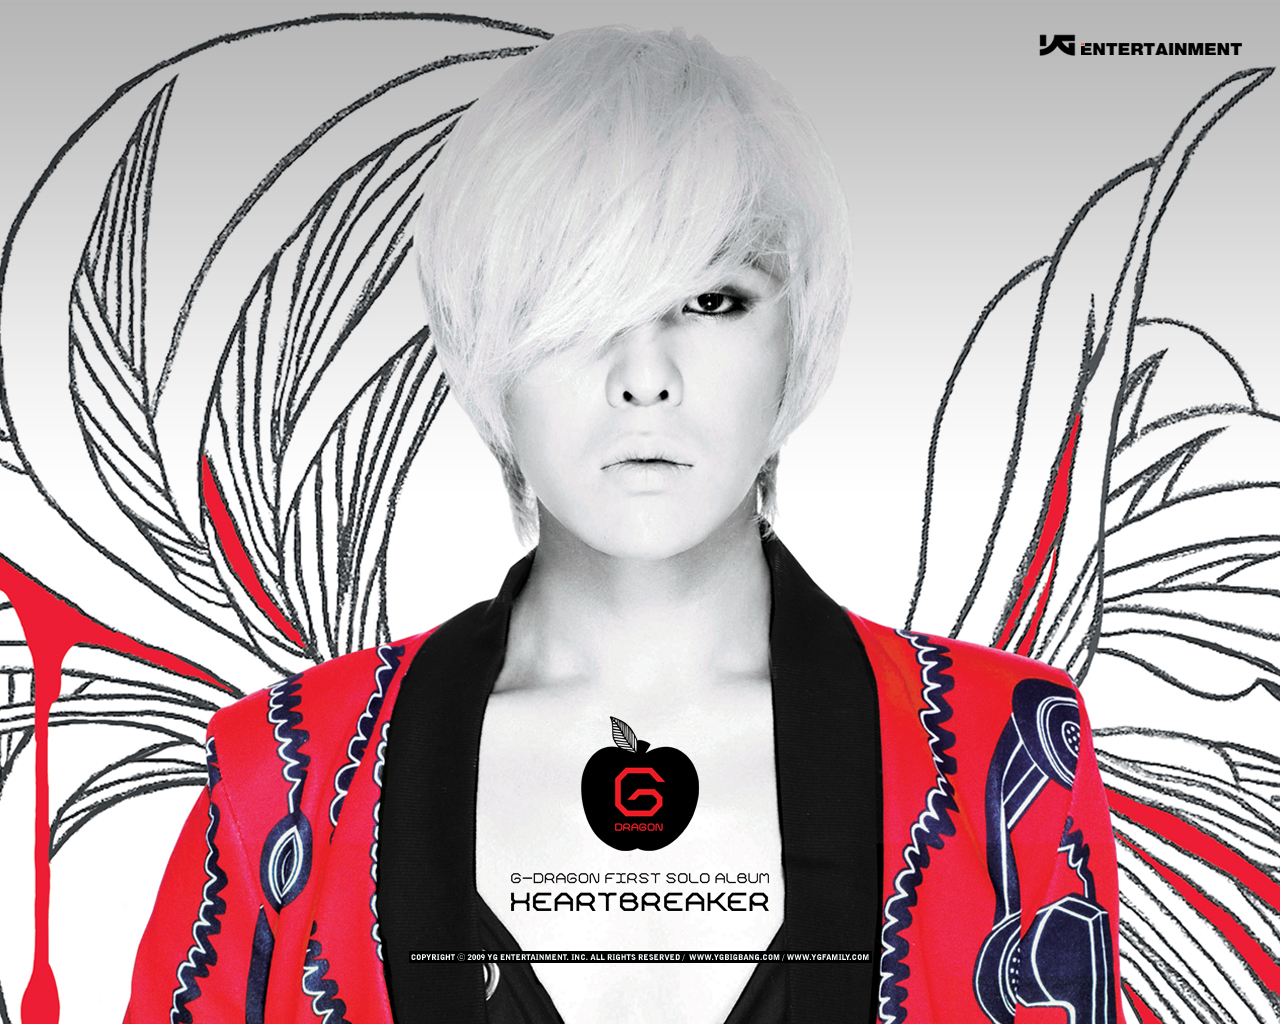 Heartbreaker Wallpaper   GD Wallpaper 31865674 1280x1024